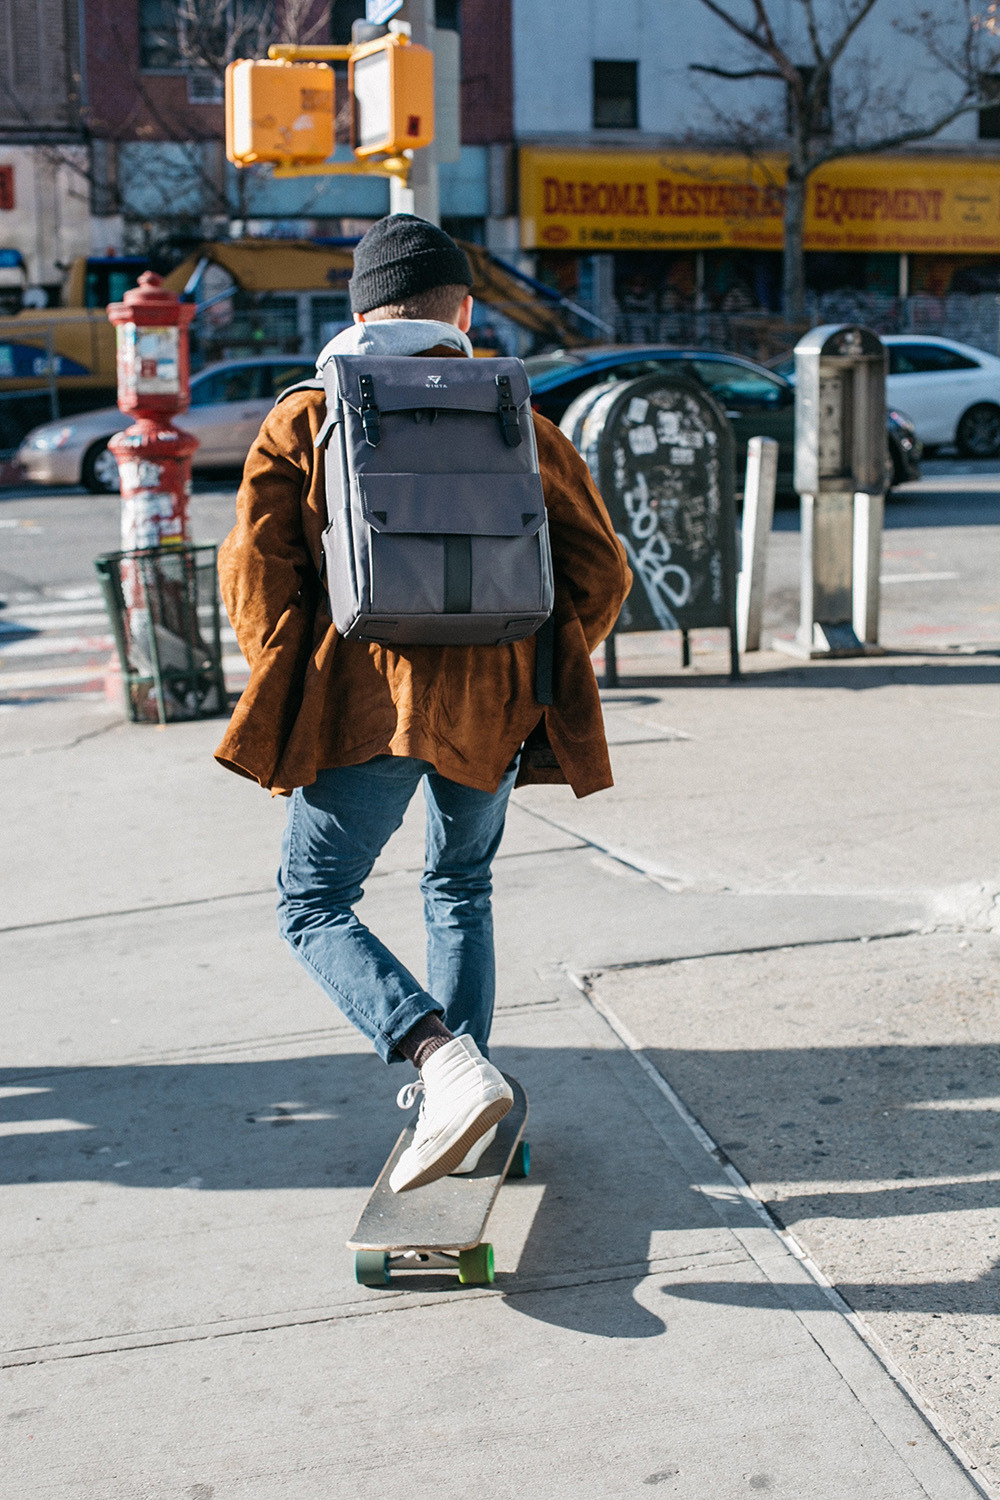 young man with a backpack riding a skateboard